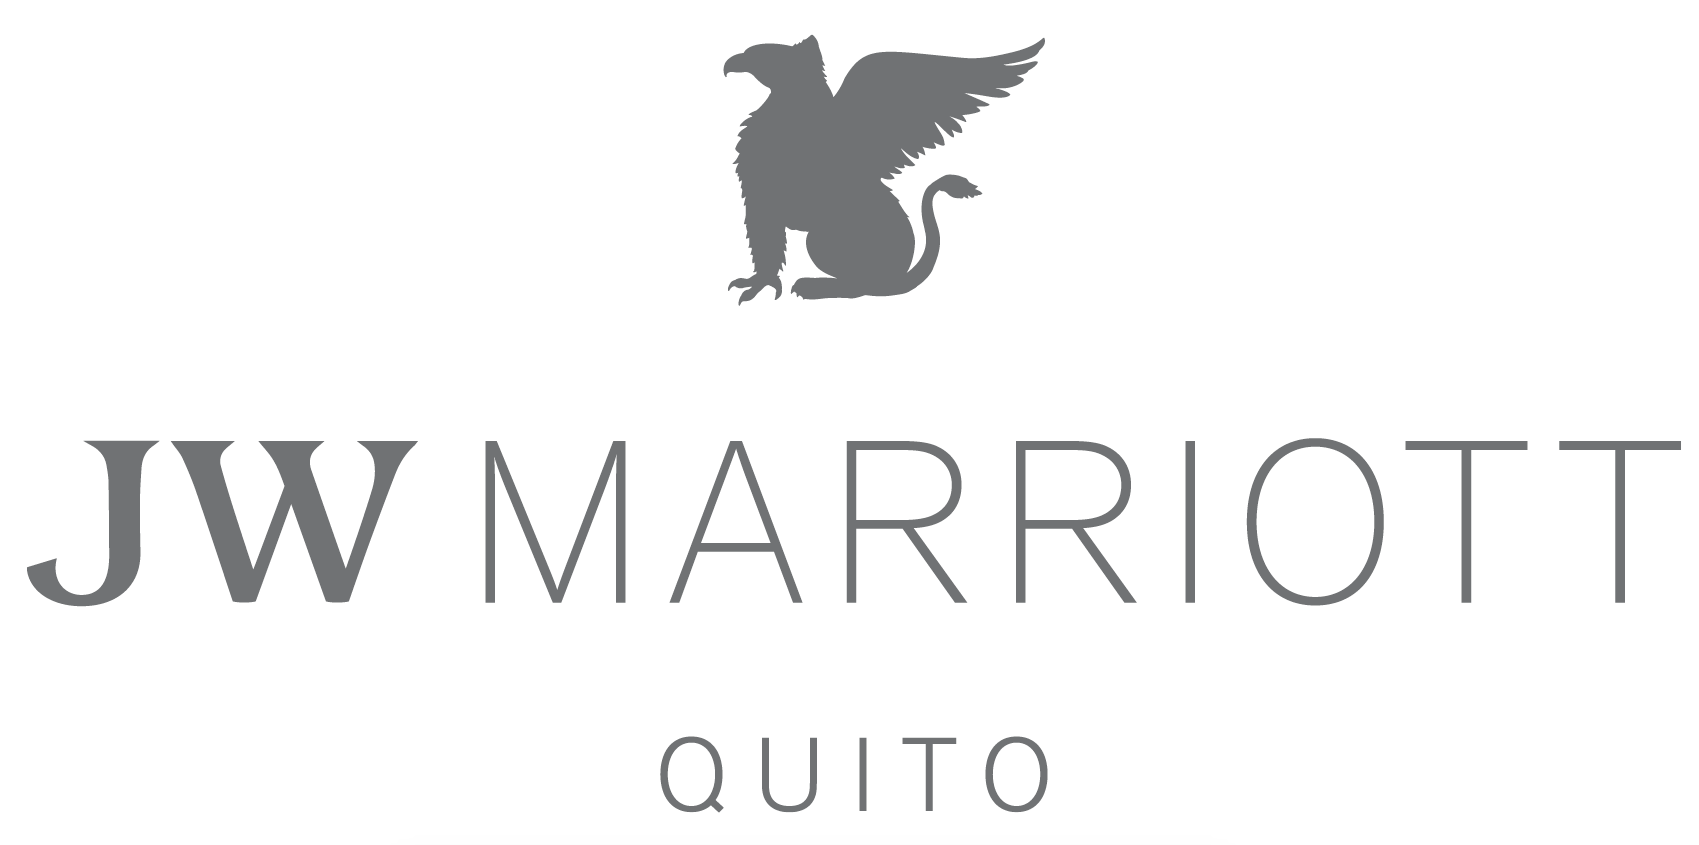 JW Marriott Quito - Clave! Turismo